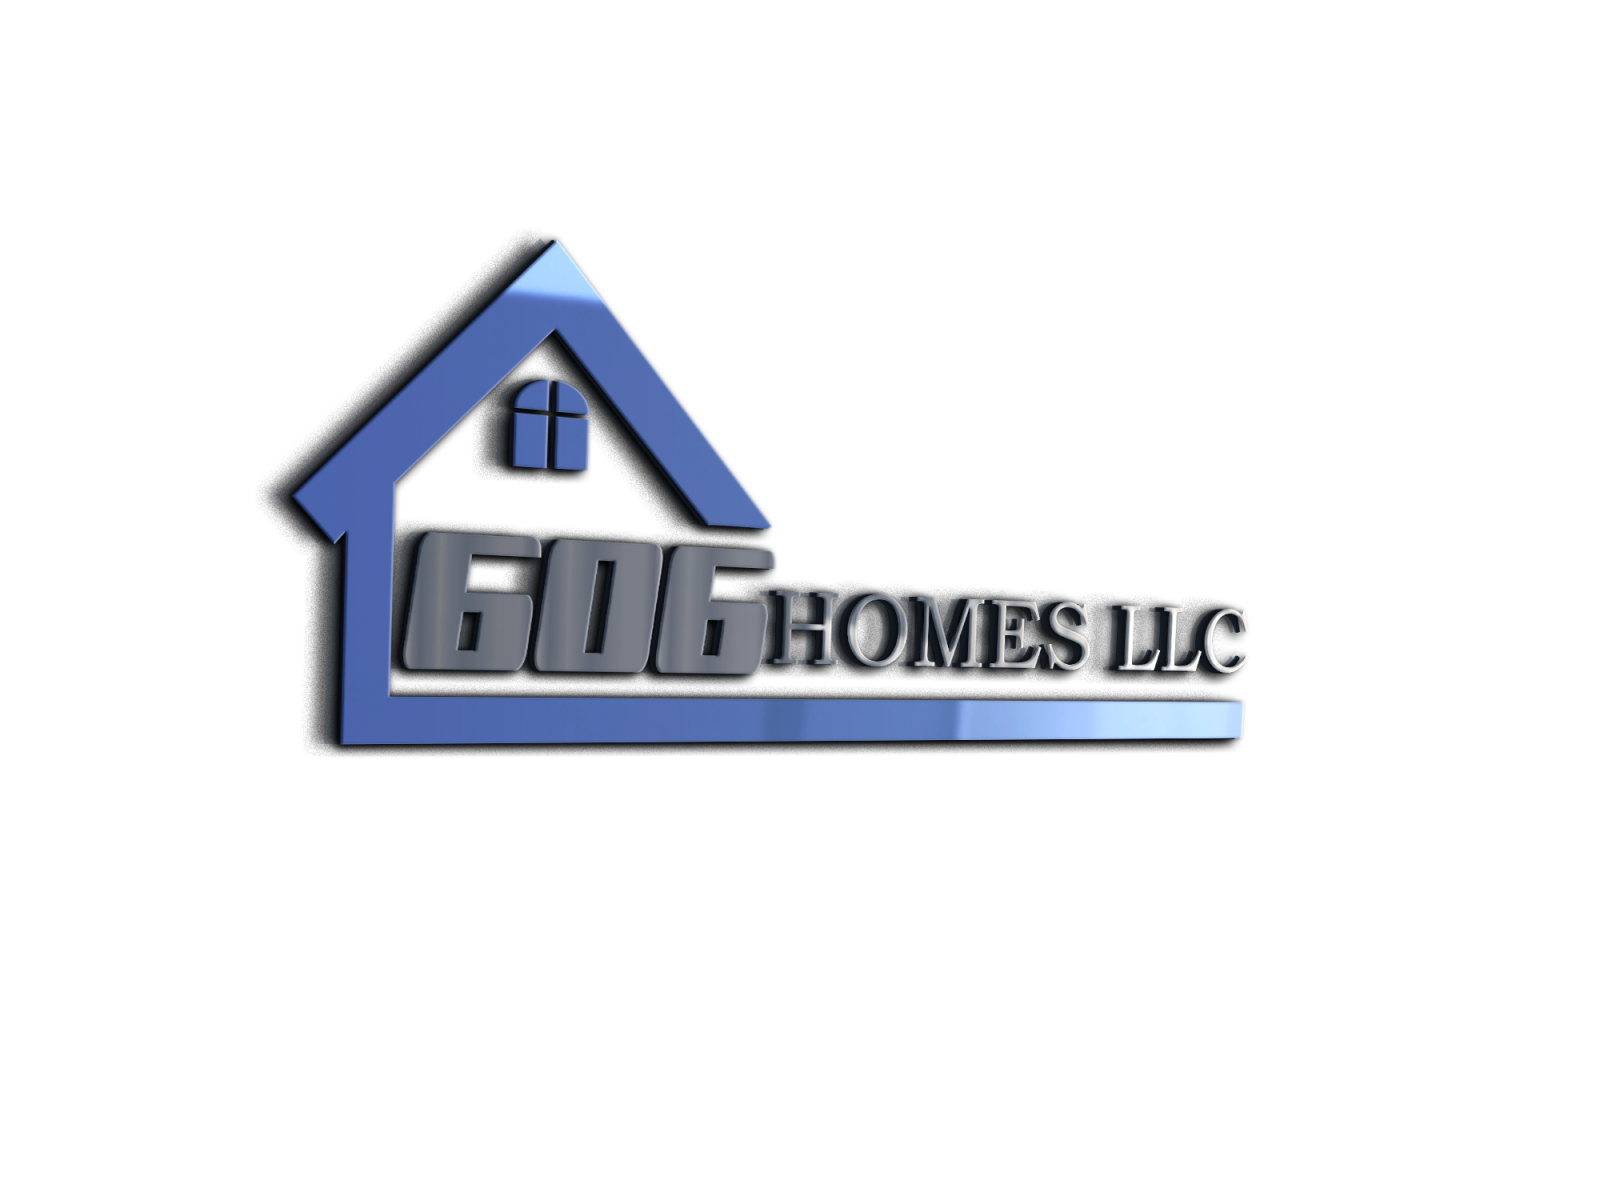 606 HOMES LLC logo